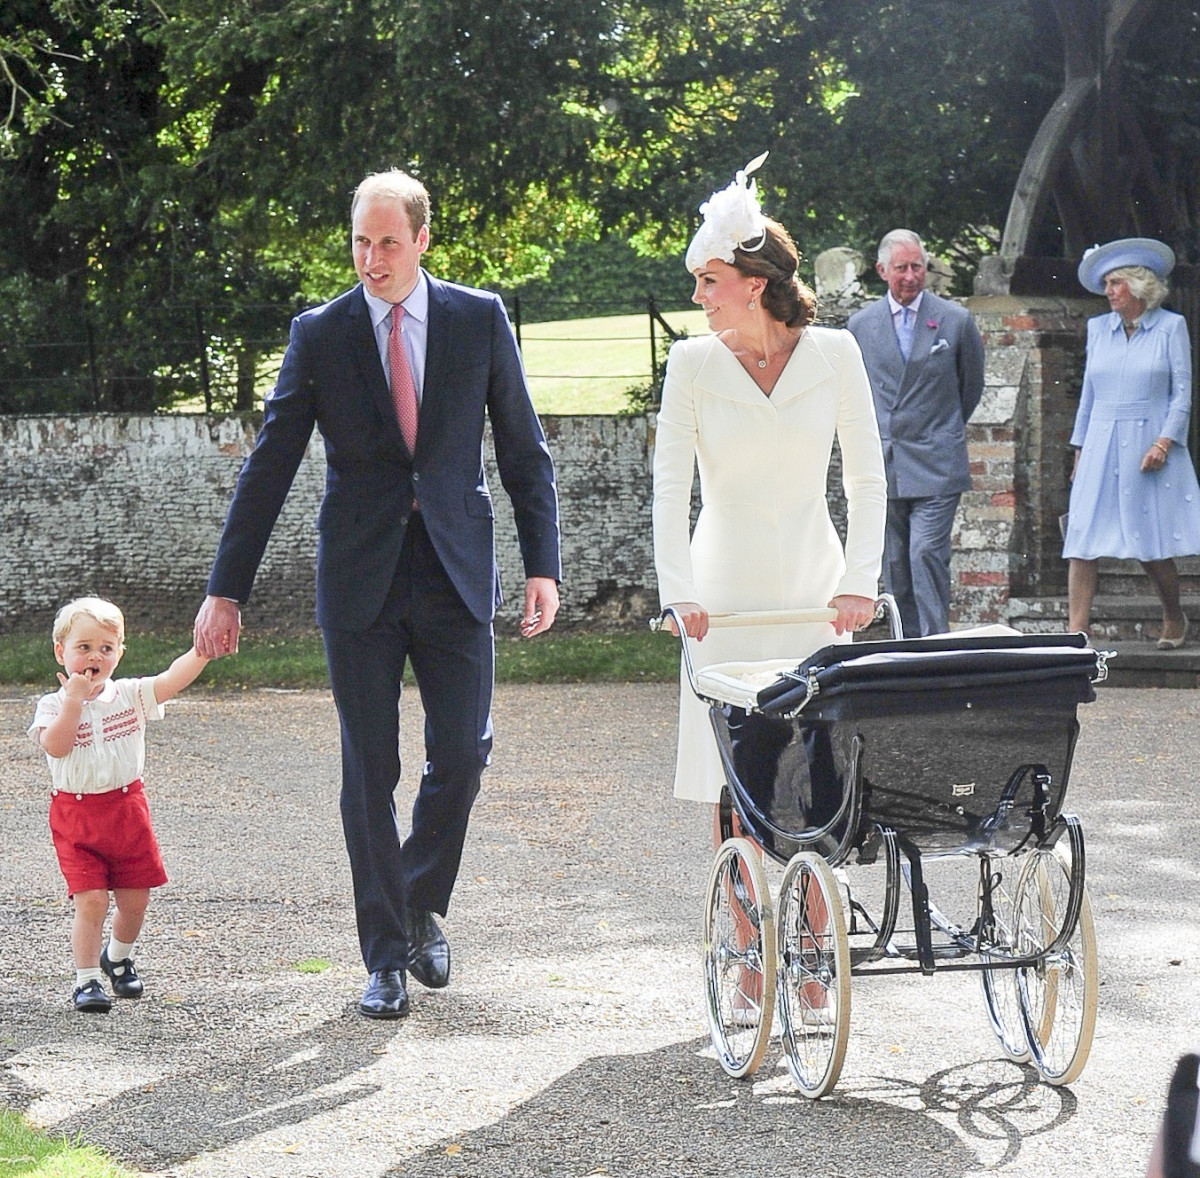 The Royal Family Attends The Christening Of Princess Charlotte In Norfolk